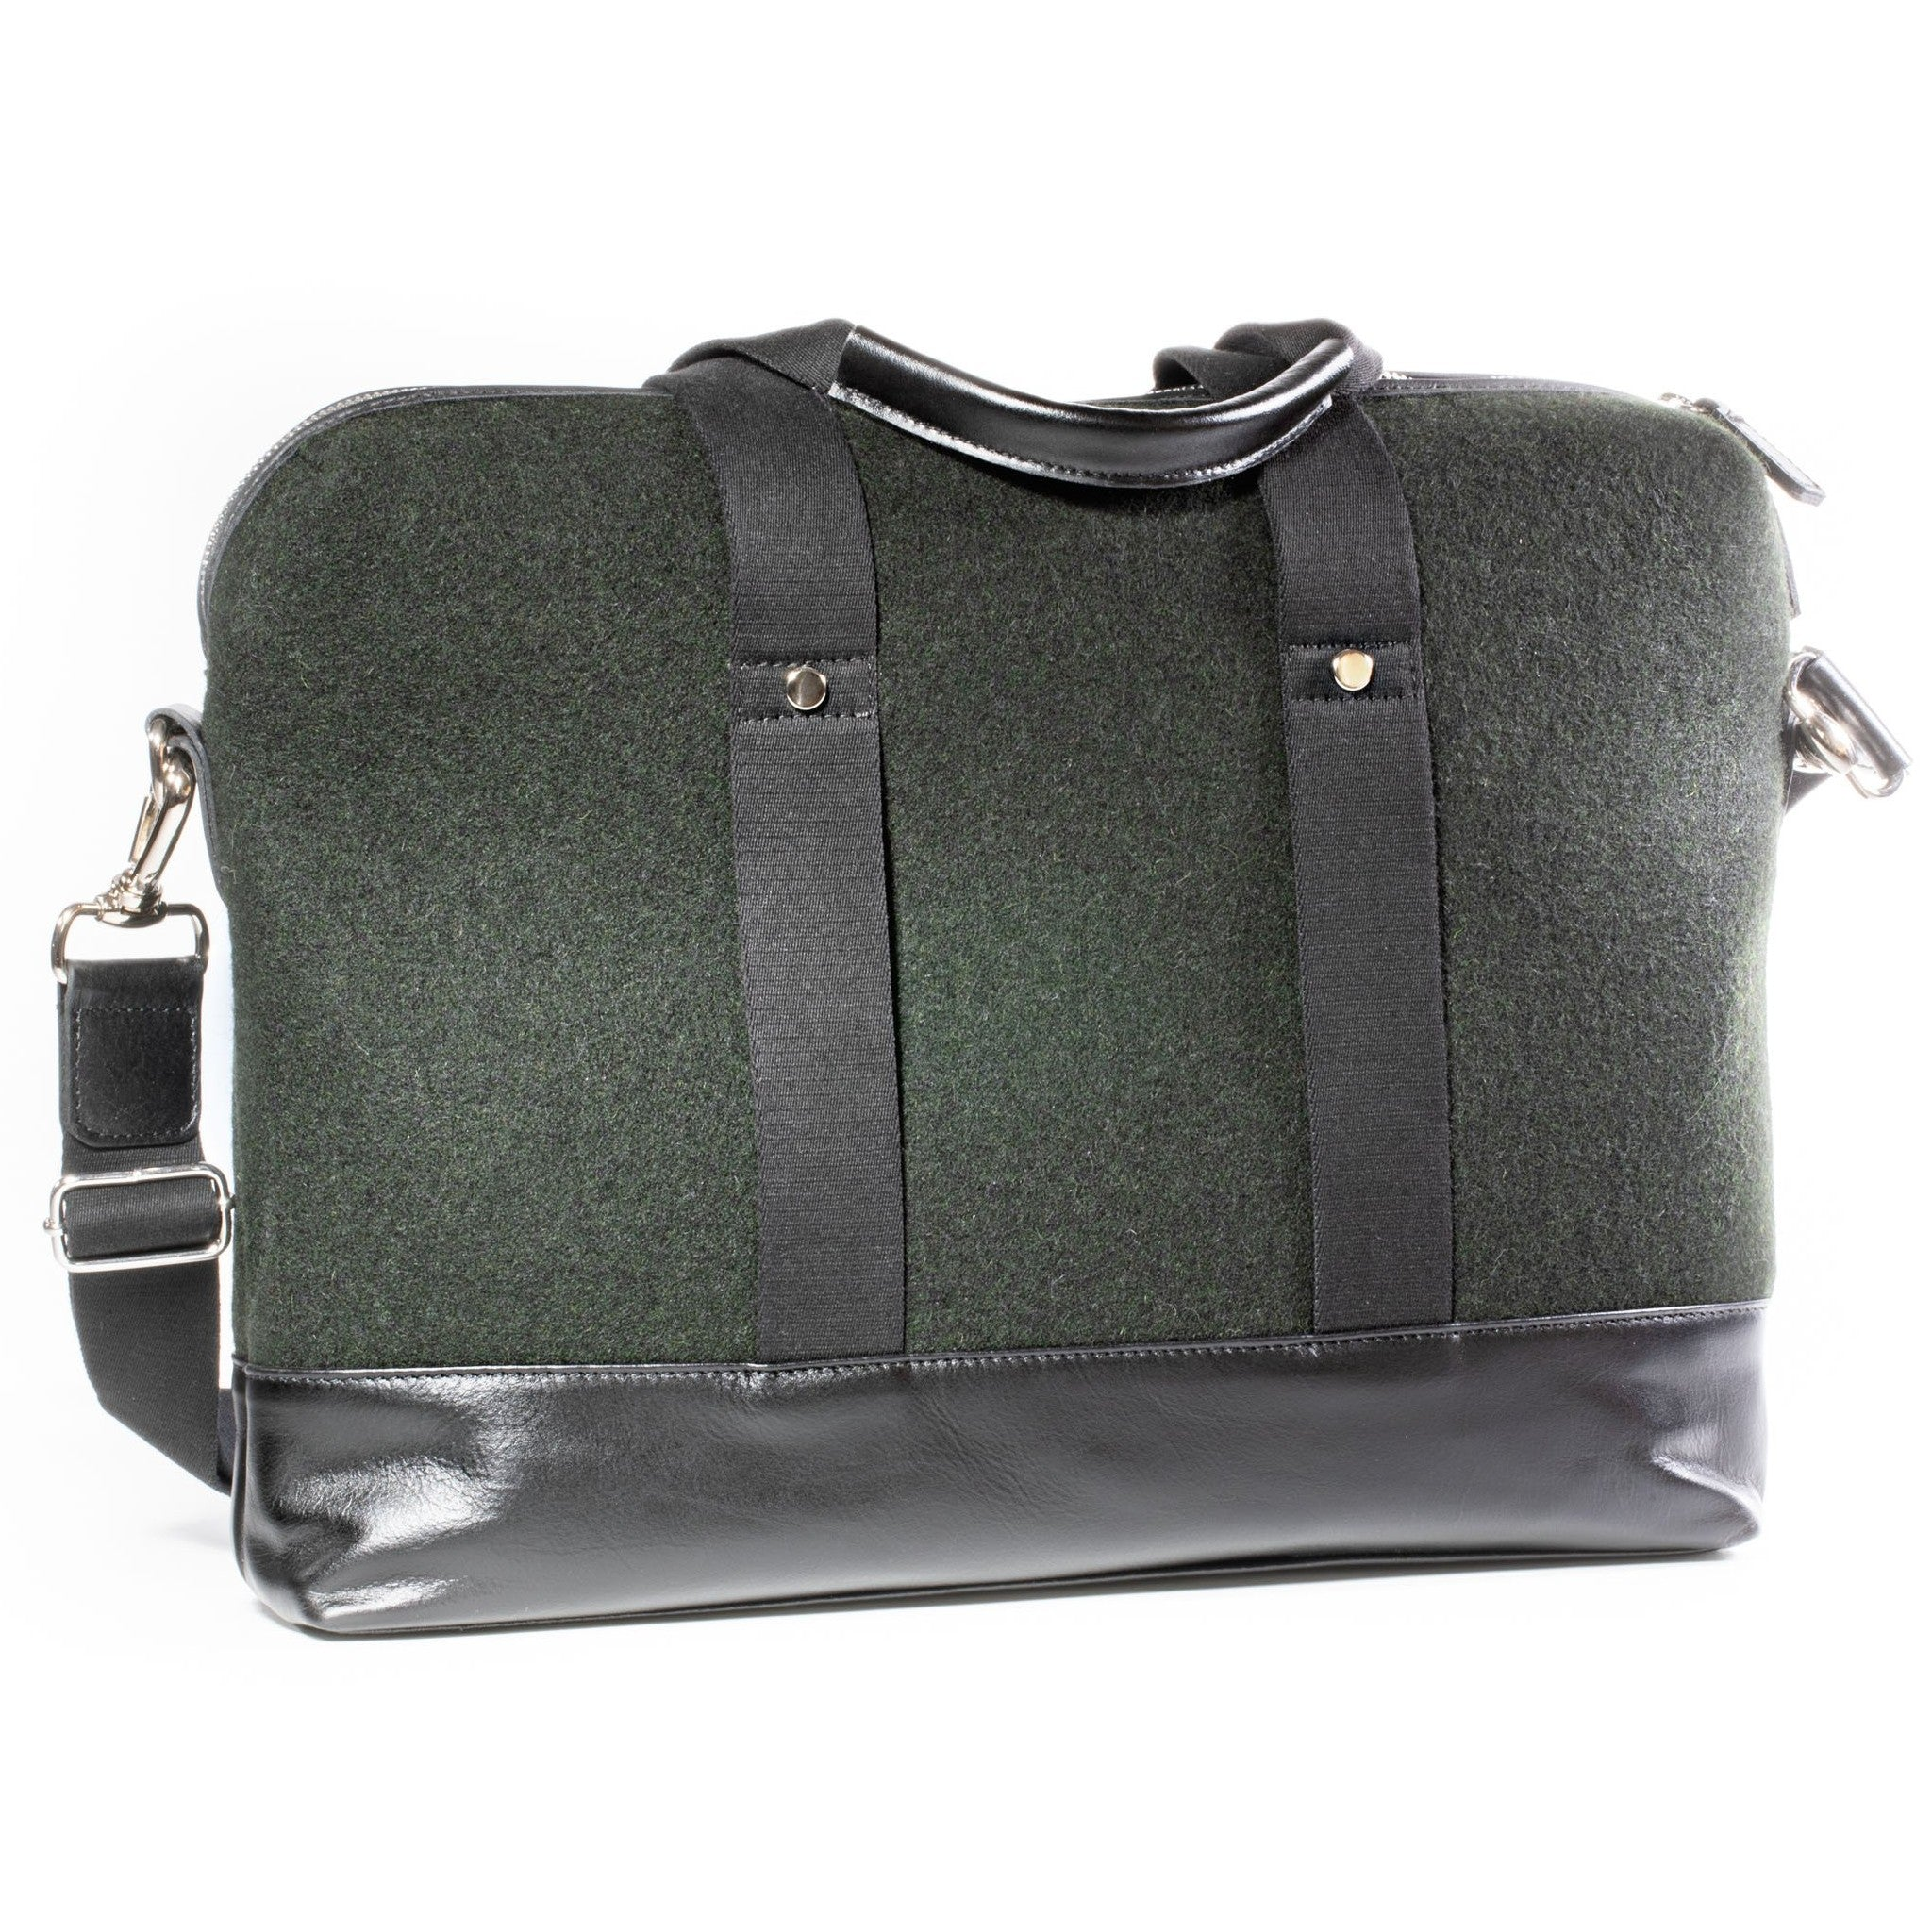 Messenger bag darkgreen-black